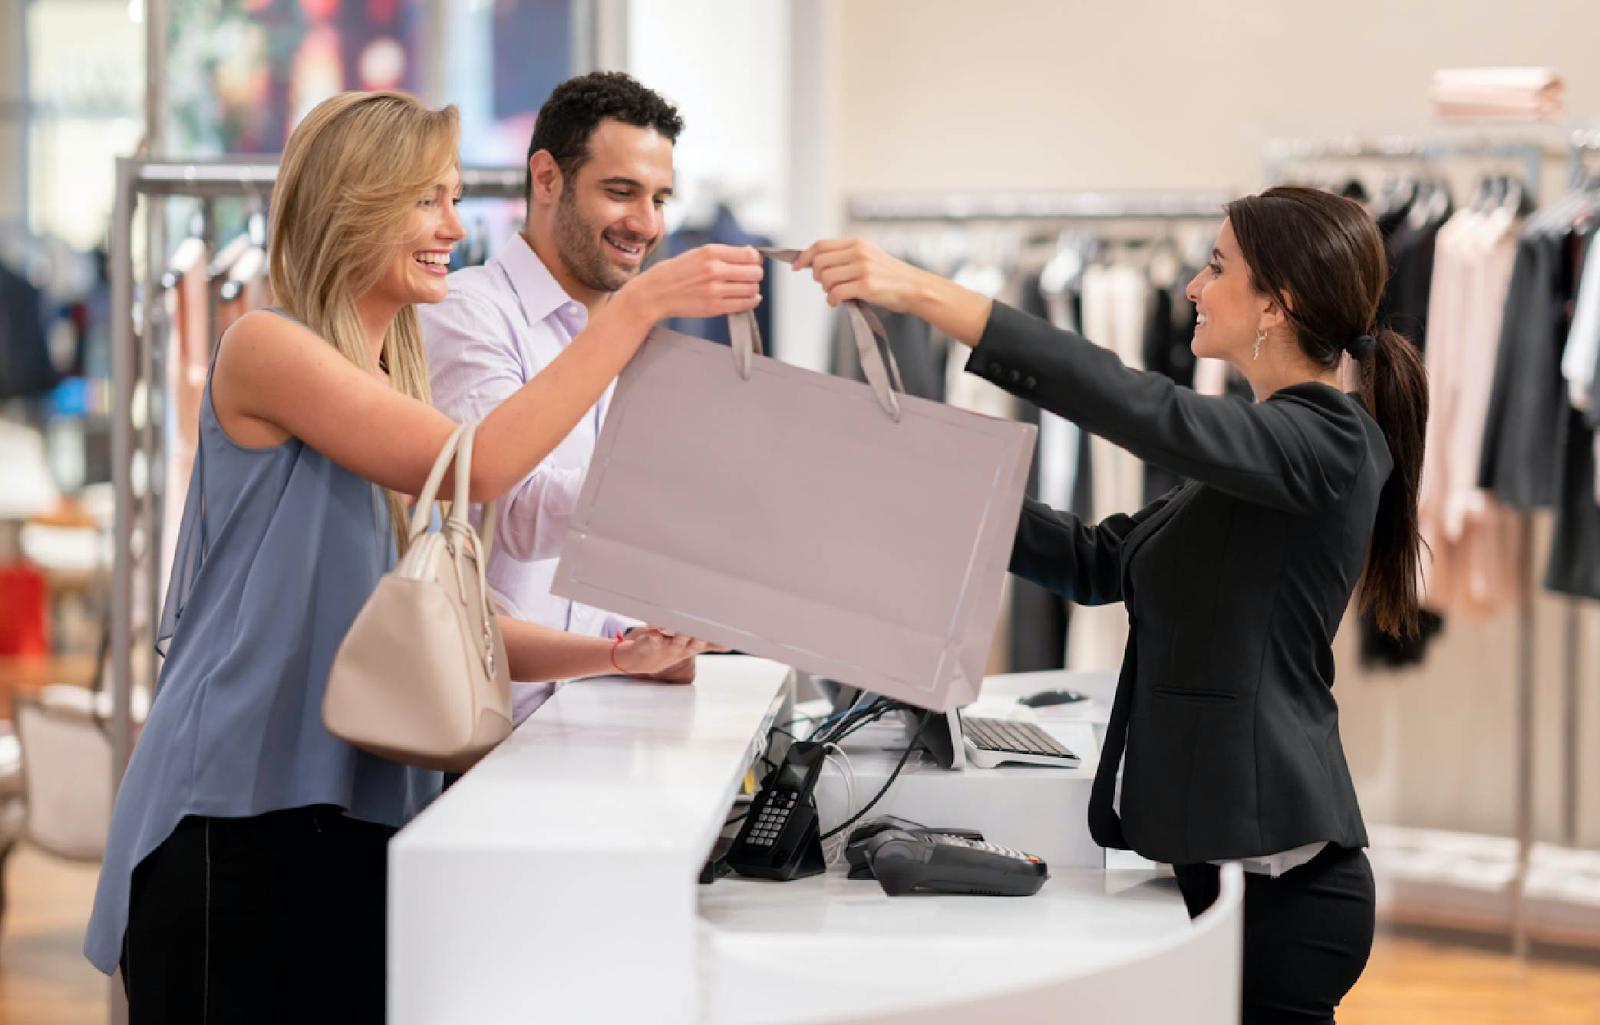 woman handing shopping bag to a couple over the counter